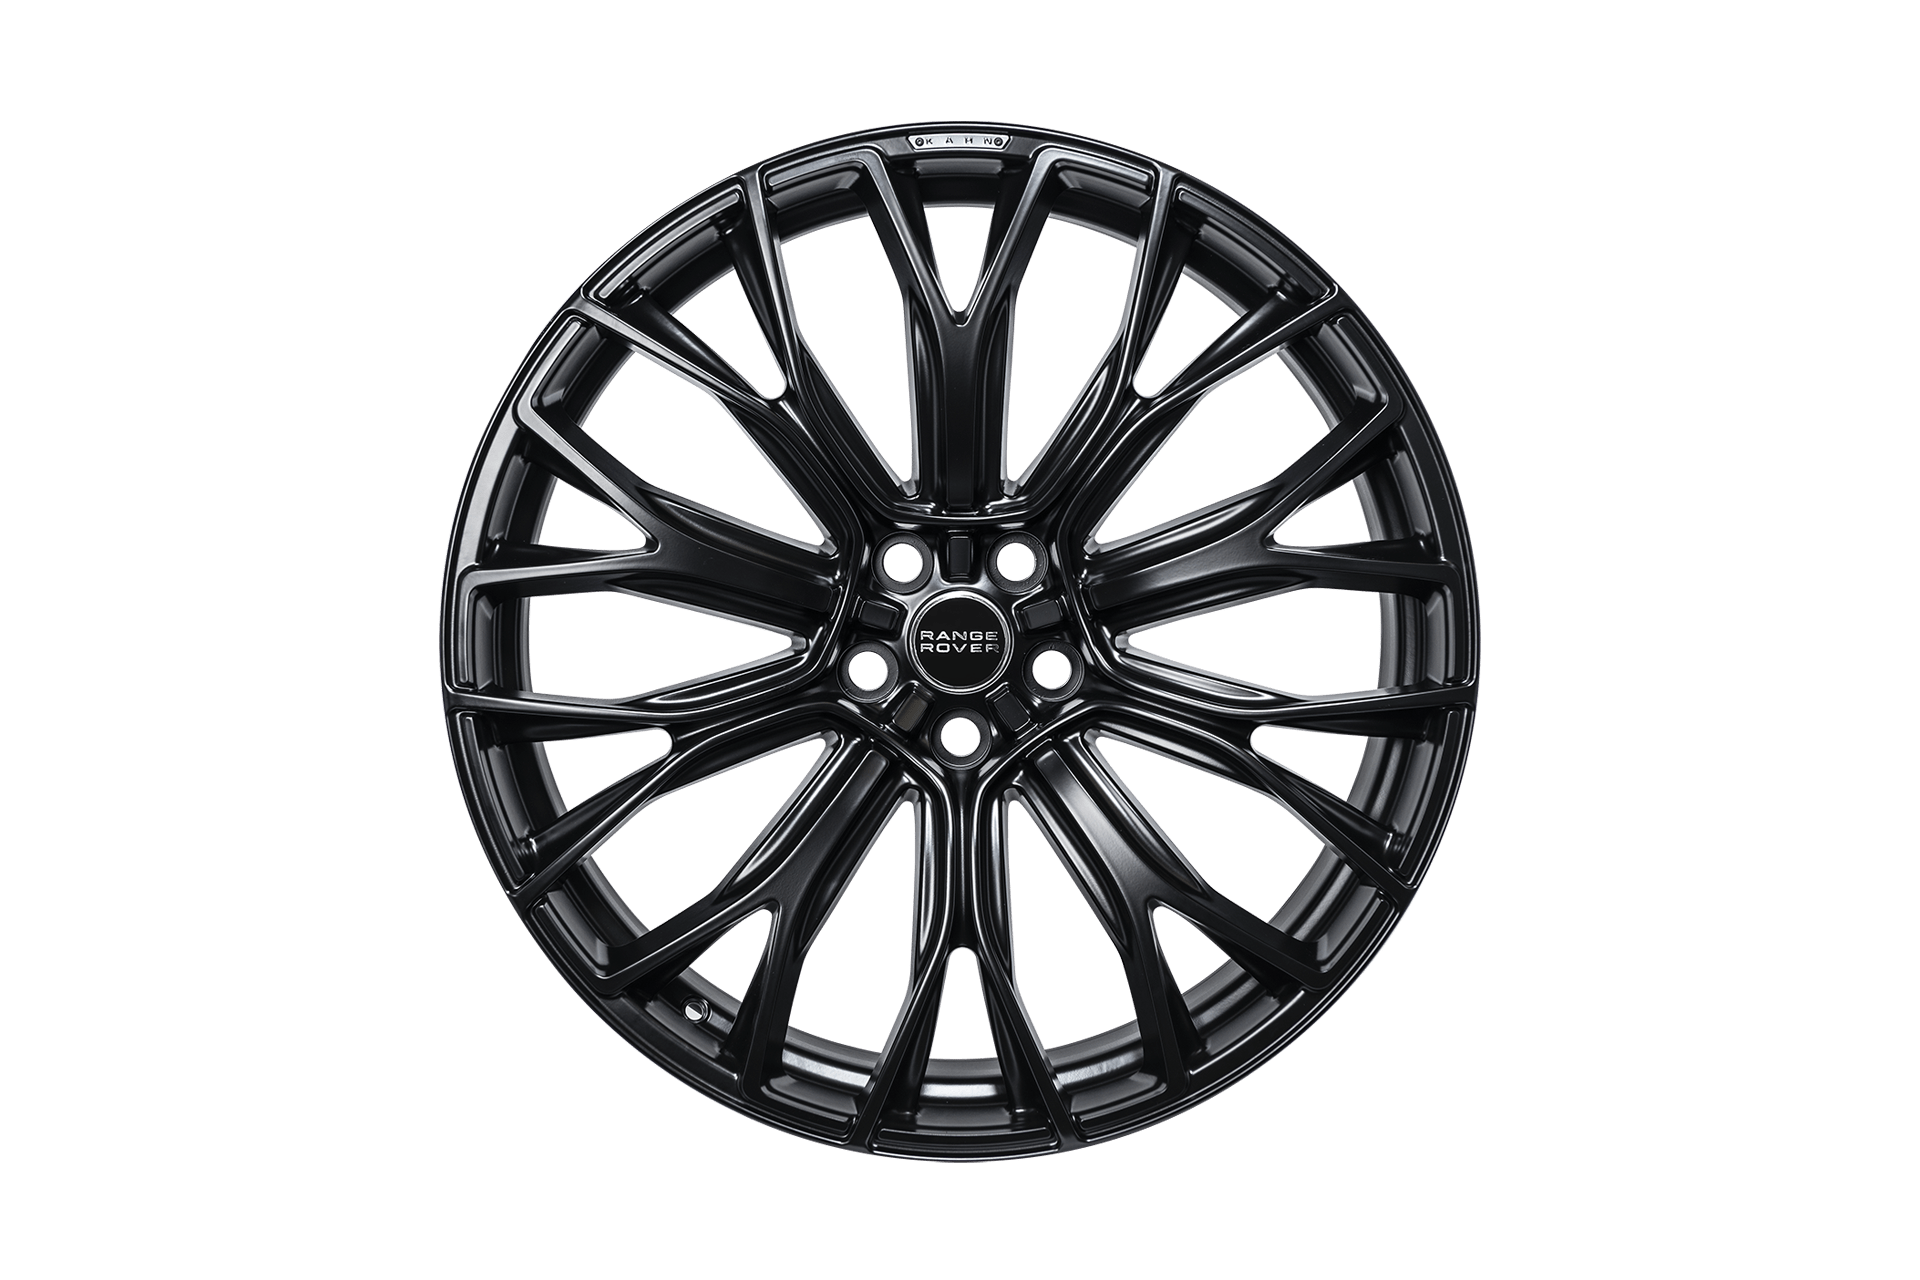 Range Rover Sport (2018-Present) Type 25 Rs-Forged Alloy Wheels by Kahn - Image 2270